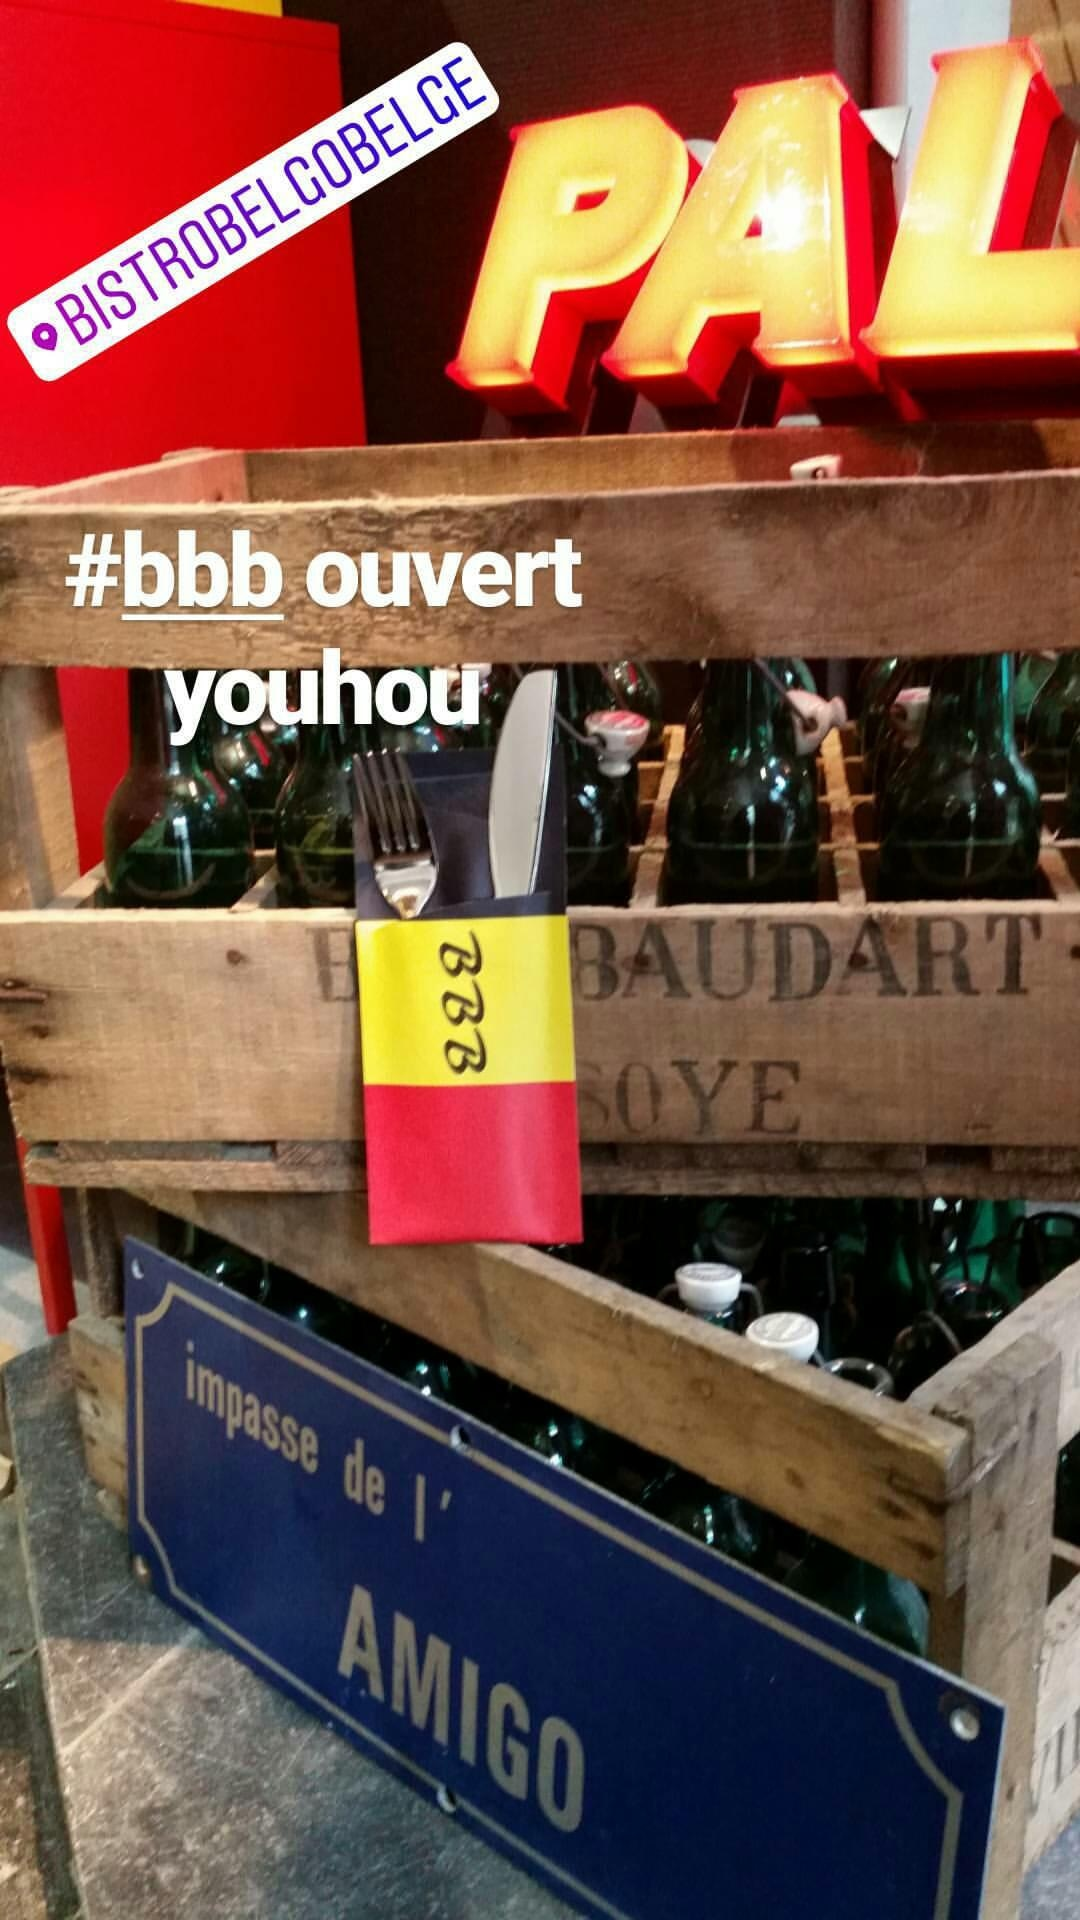 L'Estaminet du BBB